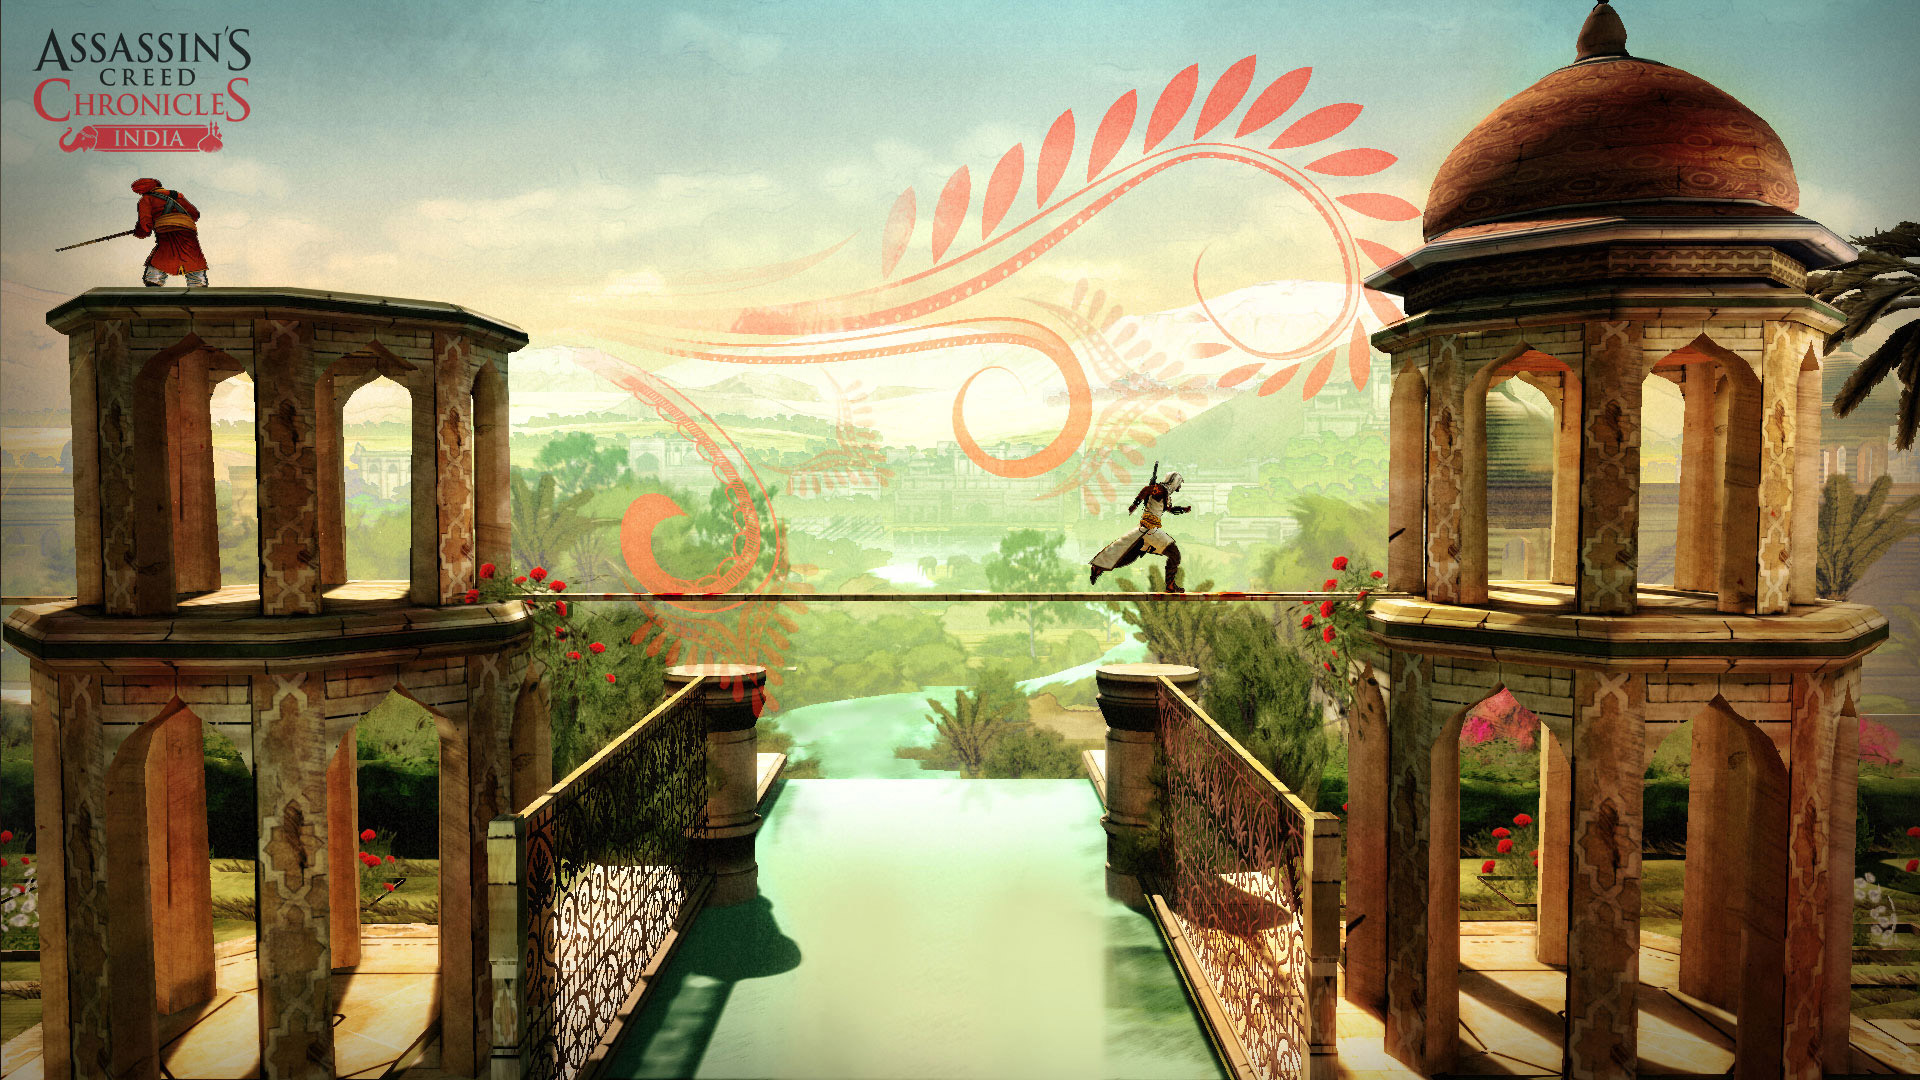 Free Assassin's Creed Chronicles: India Wallpaper in 1920x1080